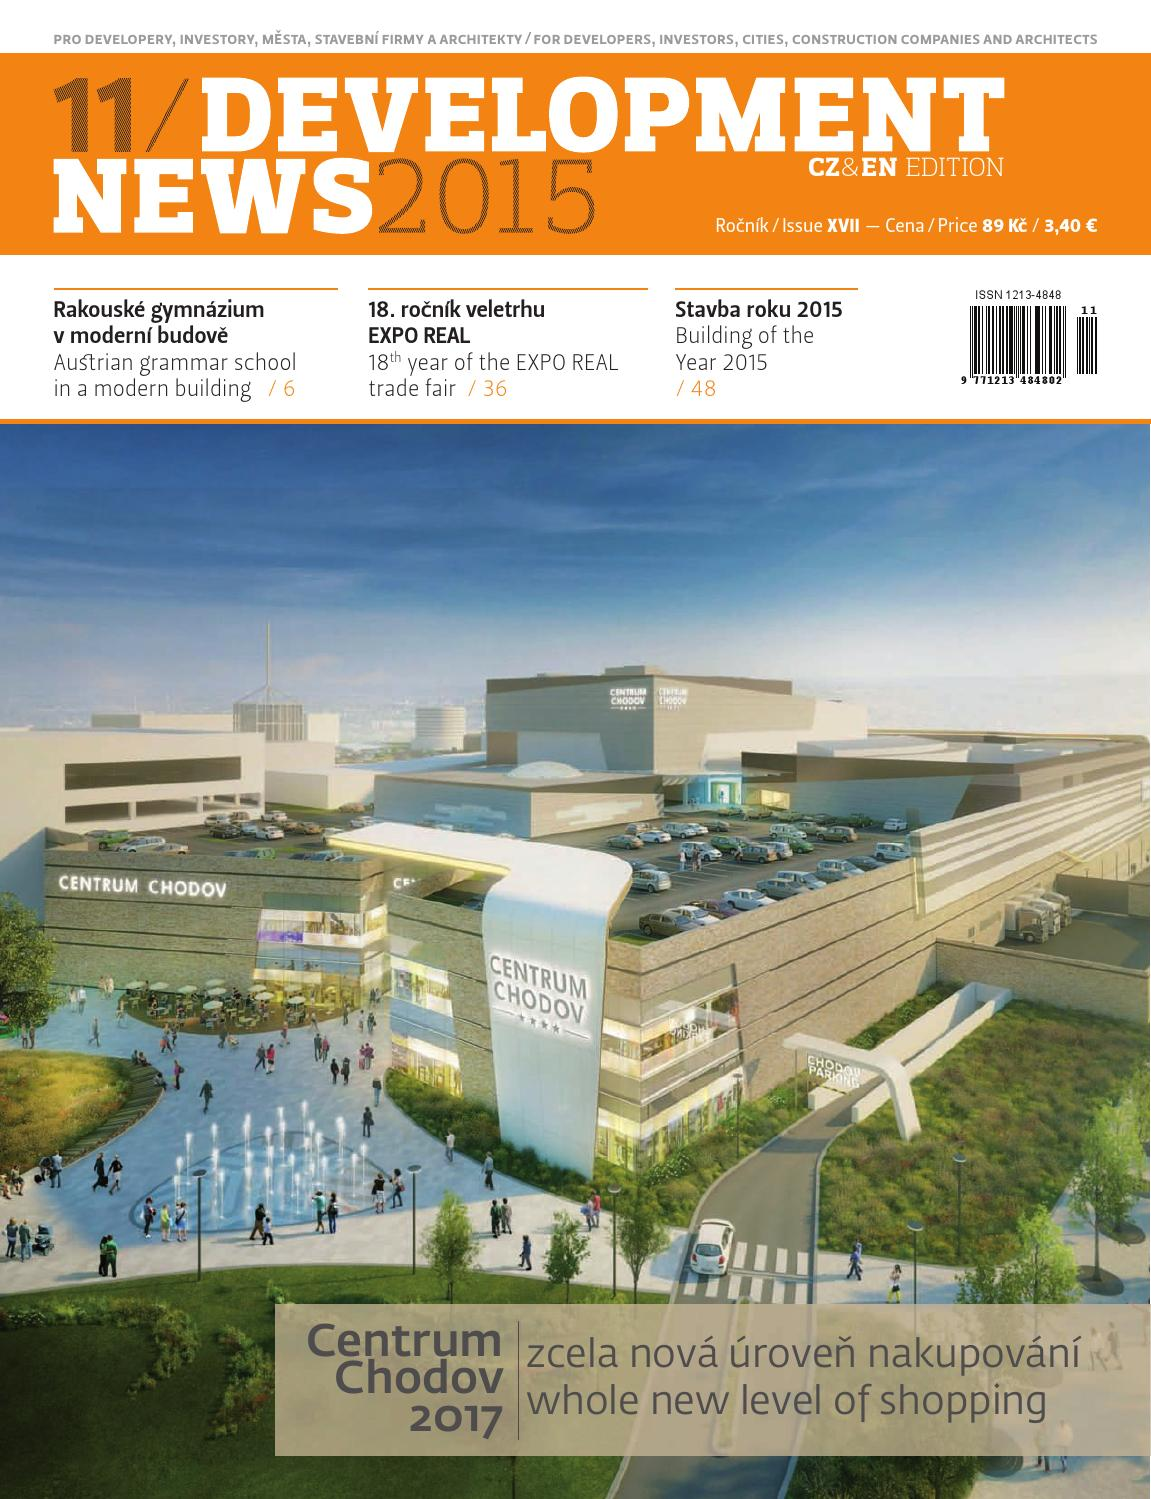 Development News 11 2015 by Wpremium event - issuu 05c107bd75